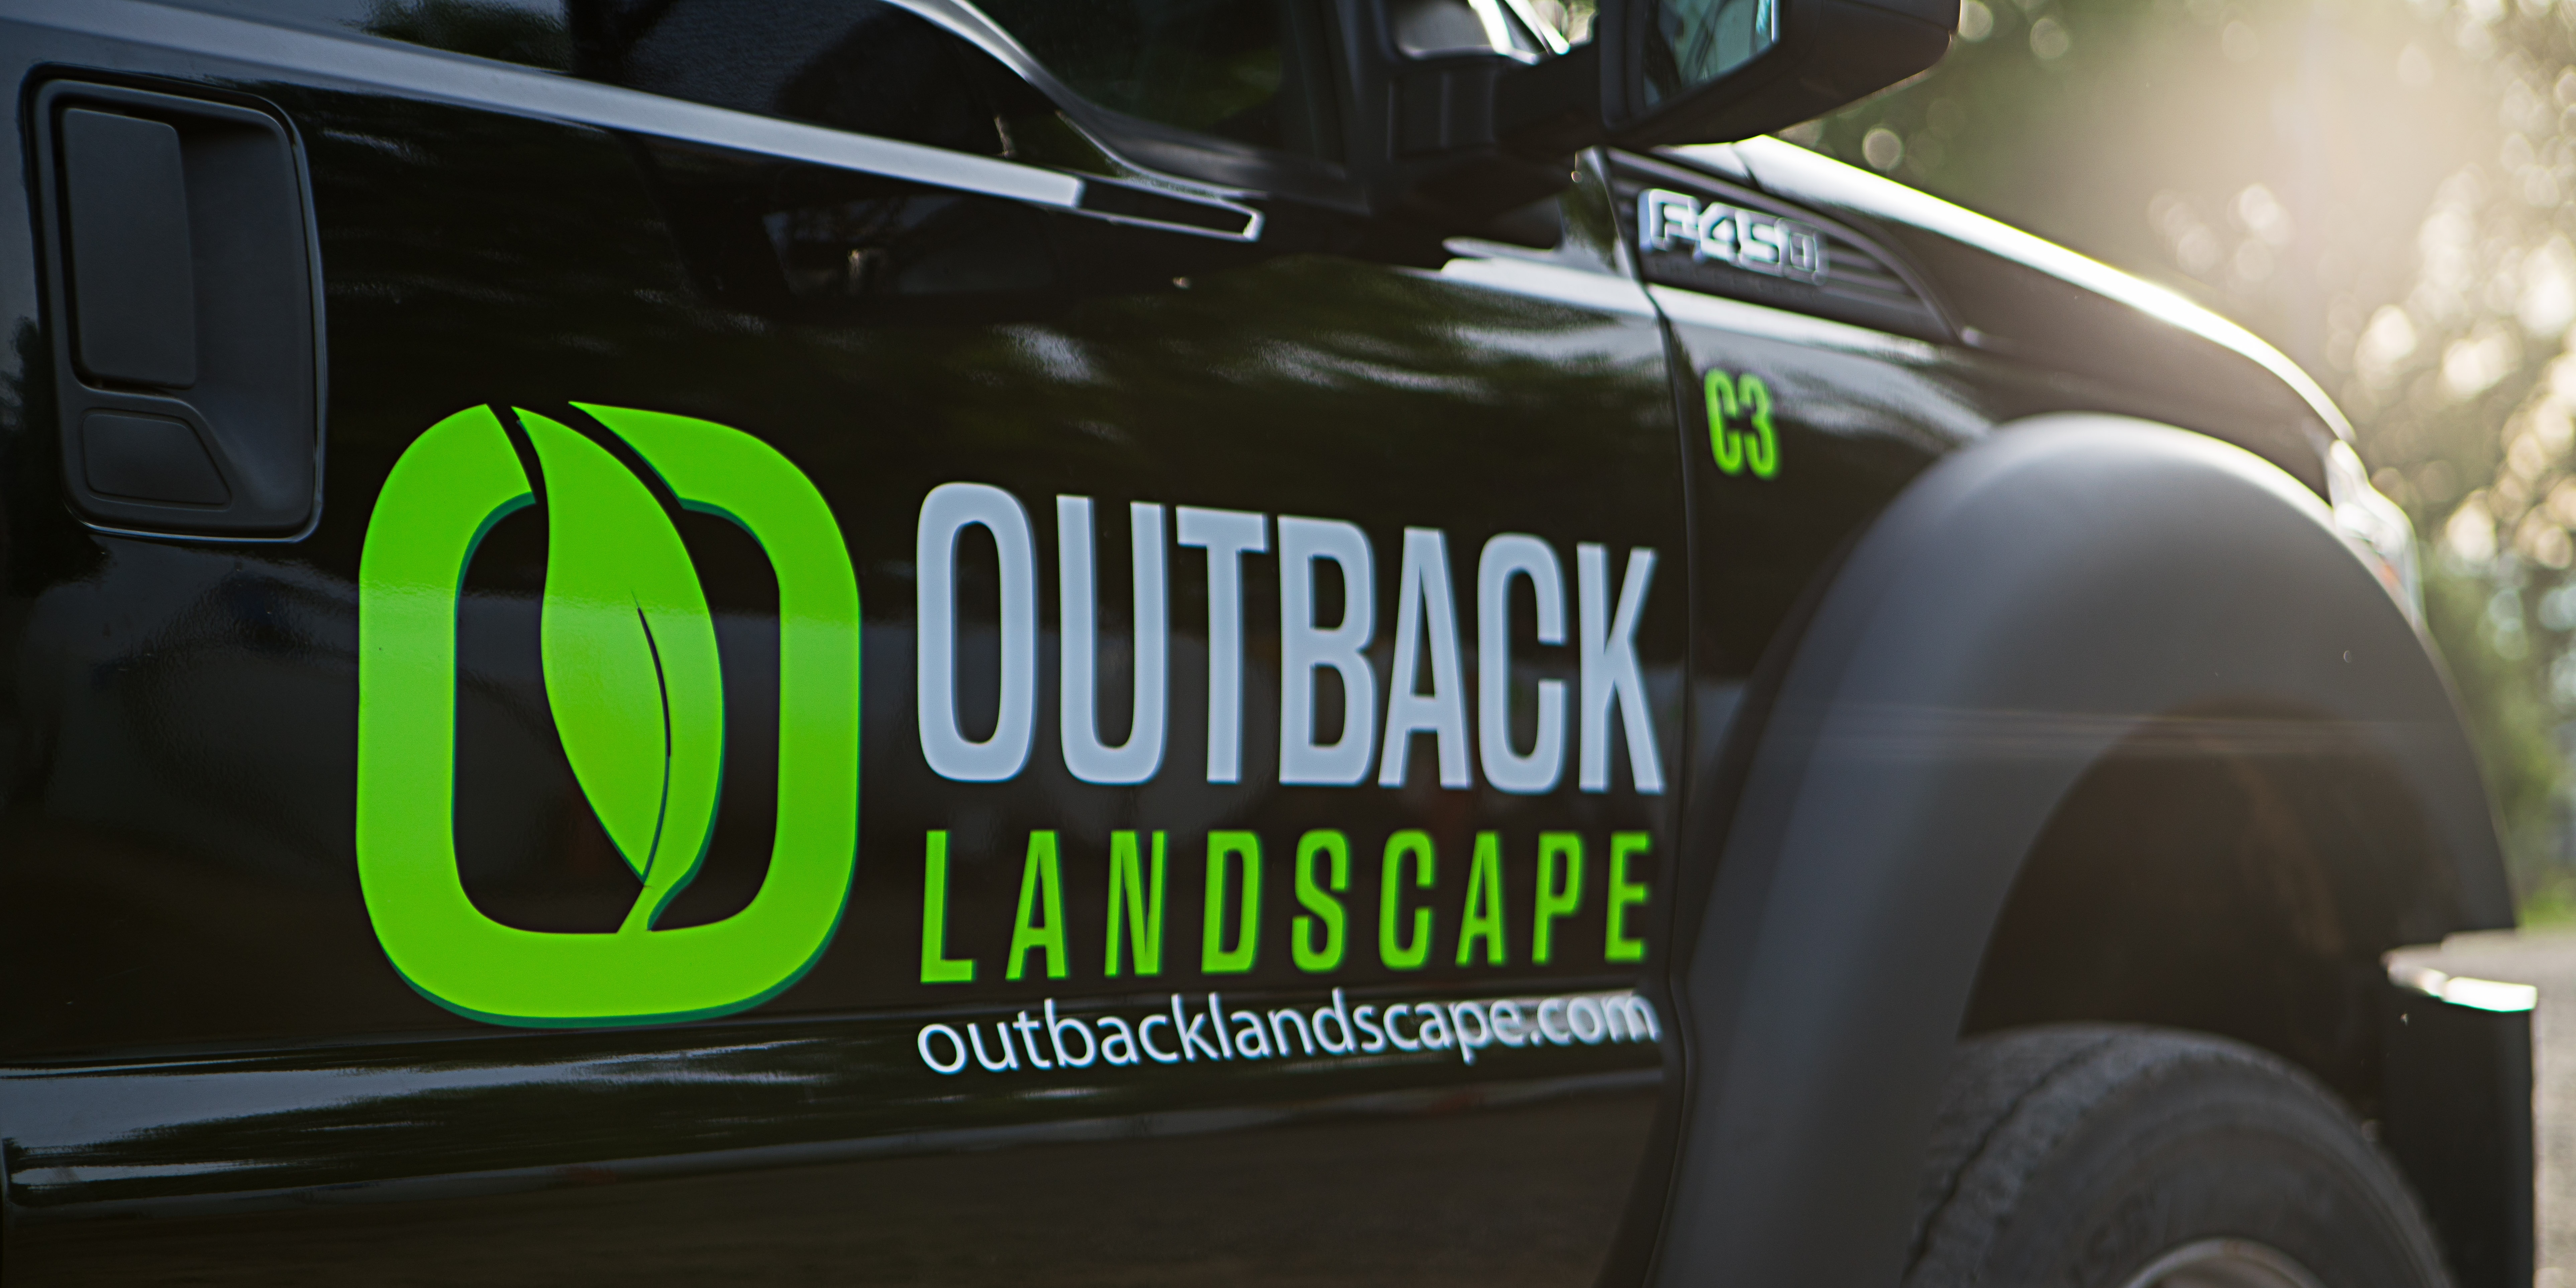 a very clean outback vehicle